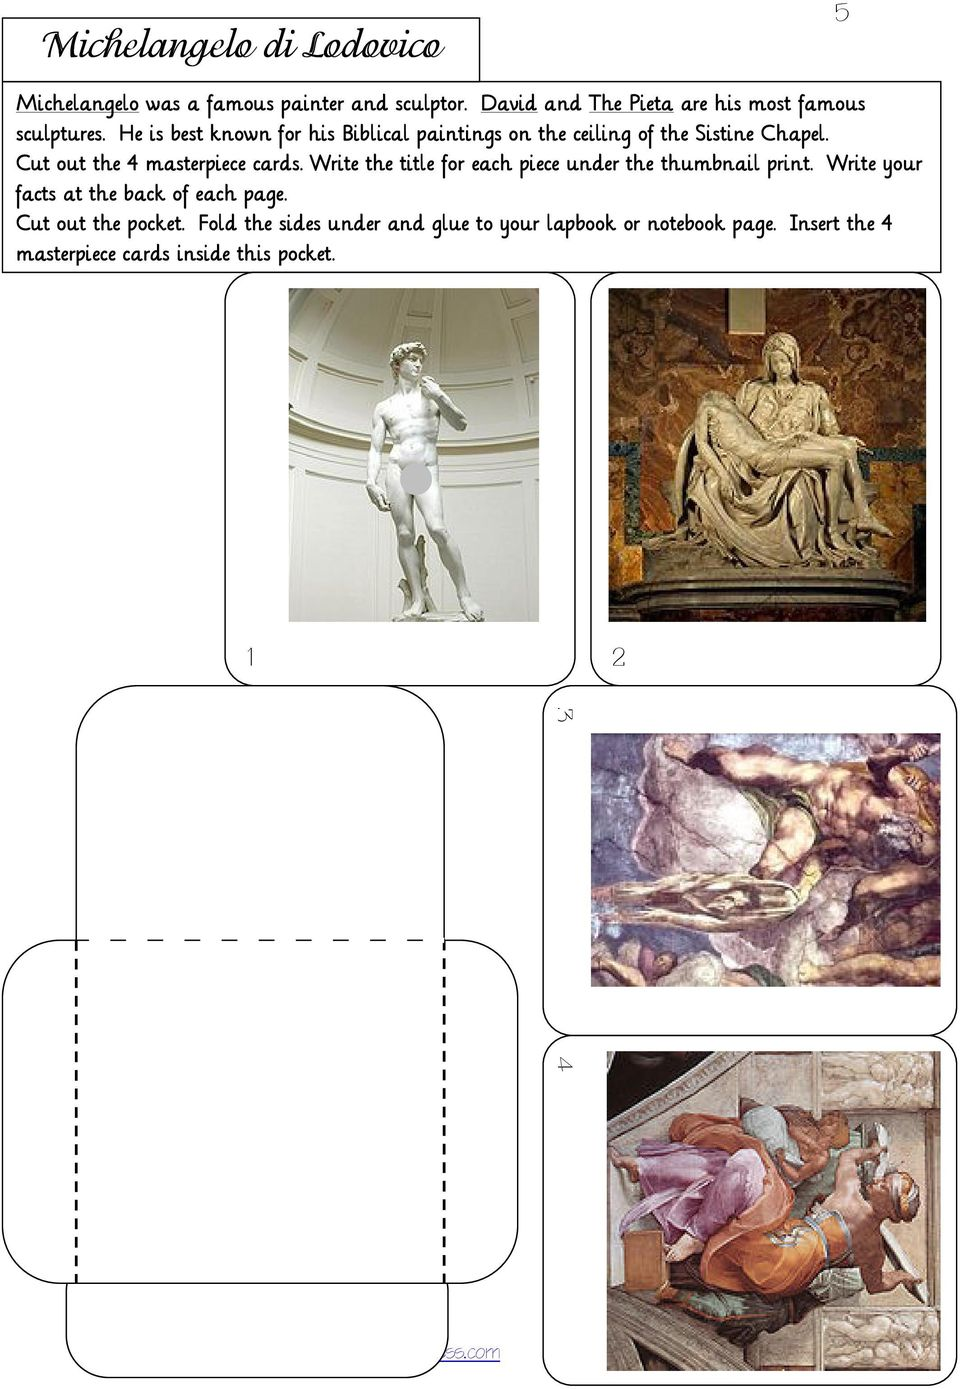 He is best known for his Biblical paintings on the ceiling of the Sistine Chapel. Cut out the 4 masterpiece cards.